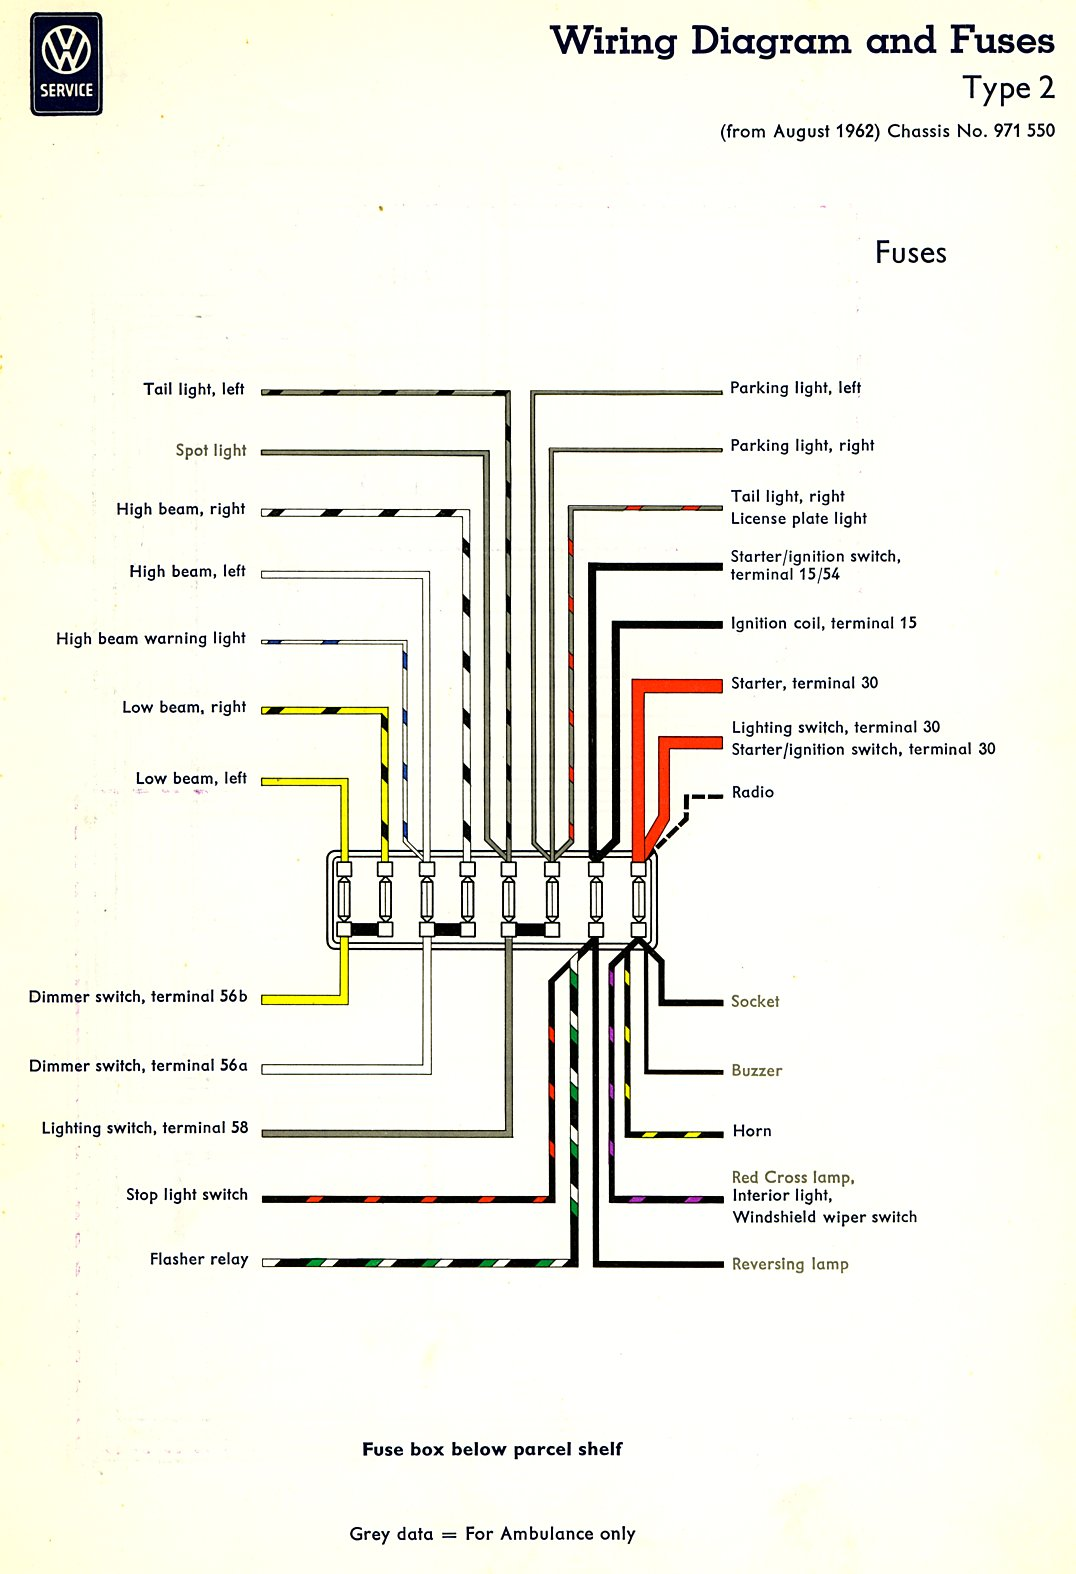 Bus Fuses on 1970 Vw Bus Parts Diagram